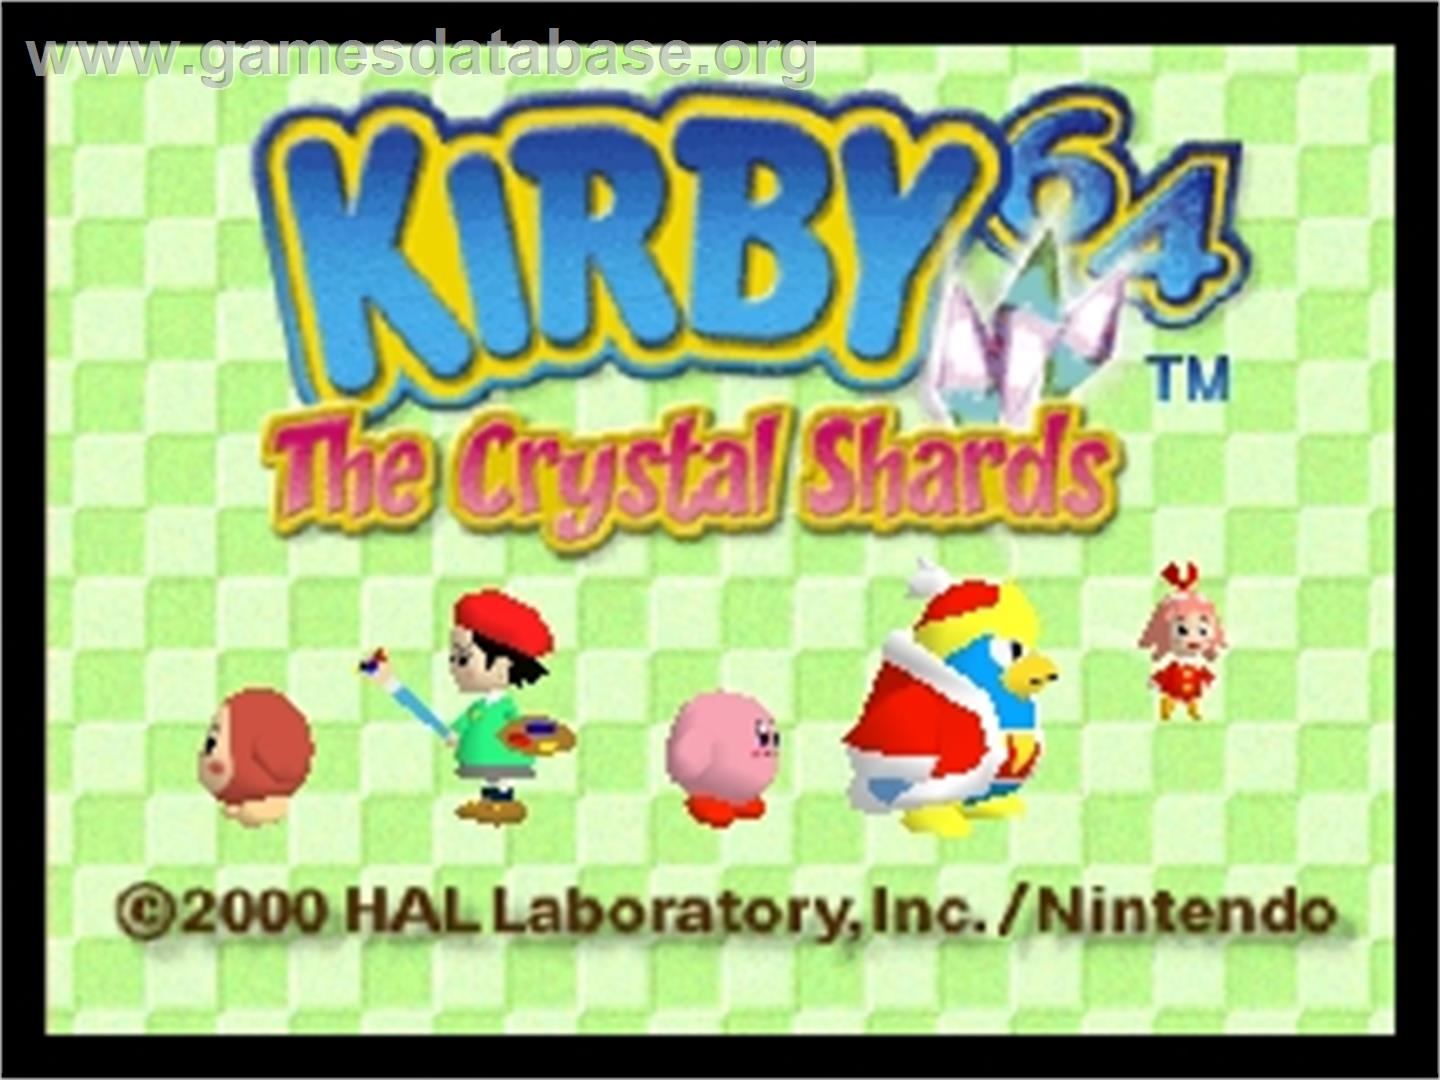 Kirby 64: The Crystal Shards - Nintendo N64 - Artwork - Title Screen